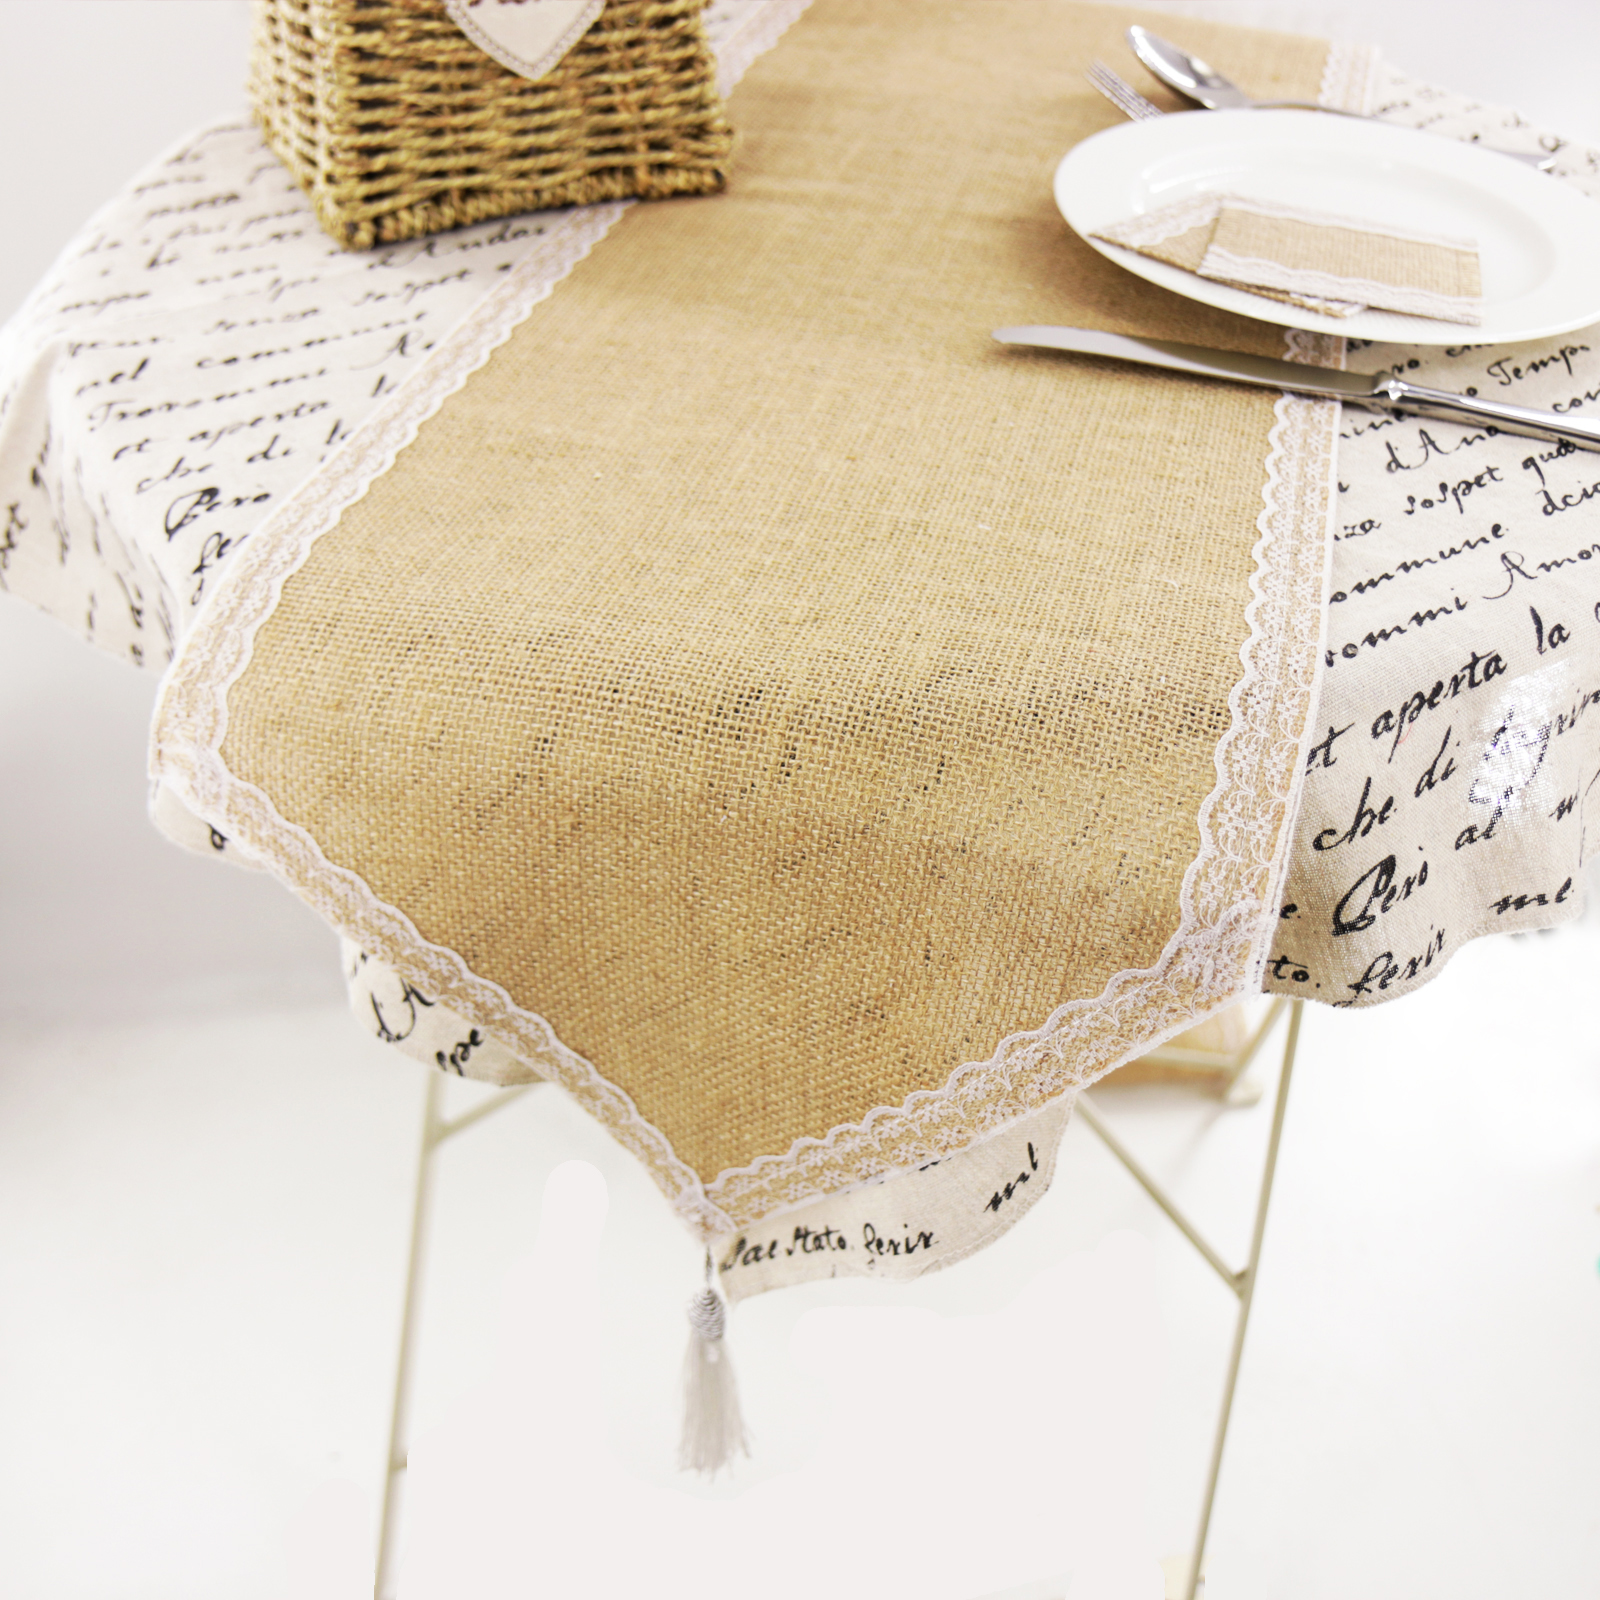 Vintage Lace Burlap Table Runner Lace Placemat Hessian Jute Country Party Imitated Linen Tablecloth Wedding Banquet Home Decor